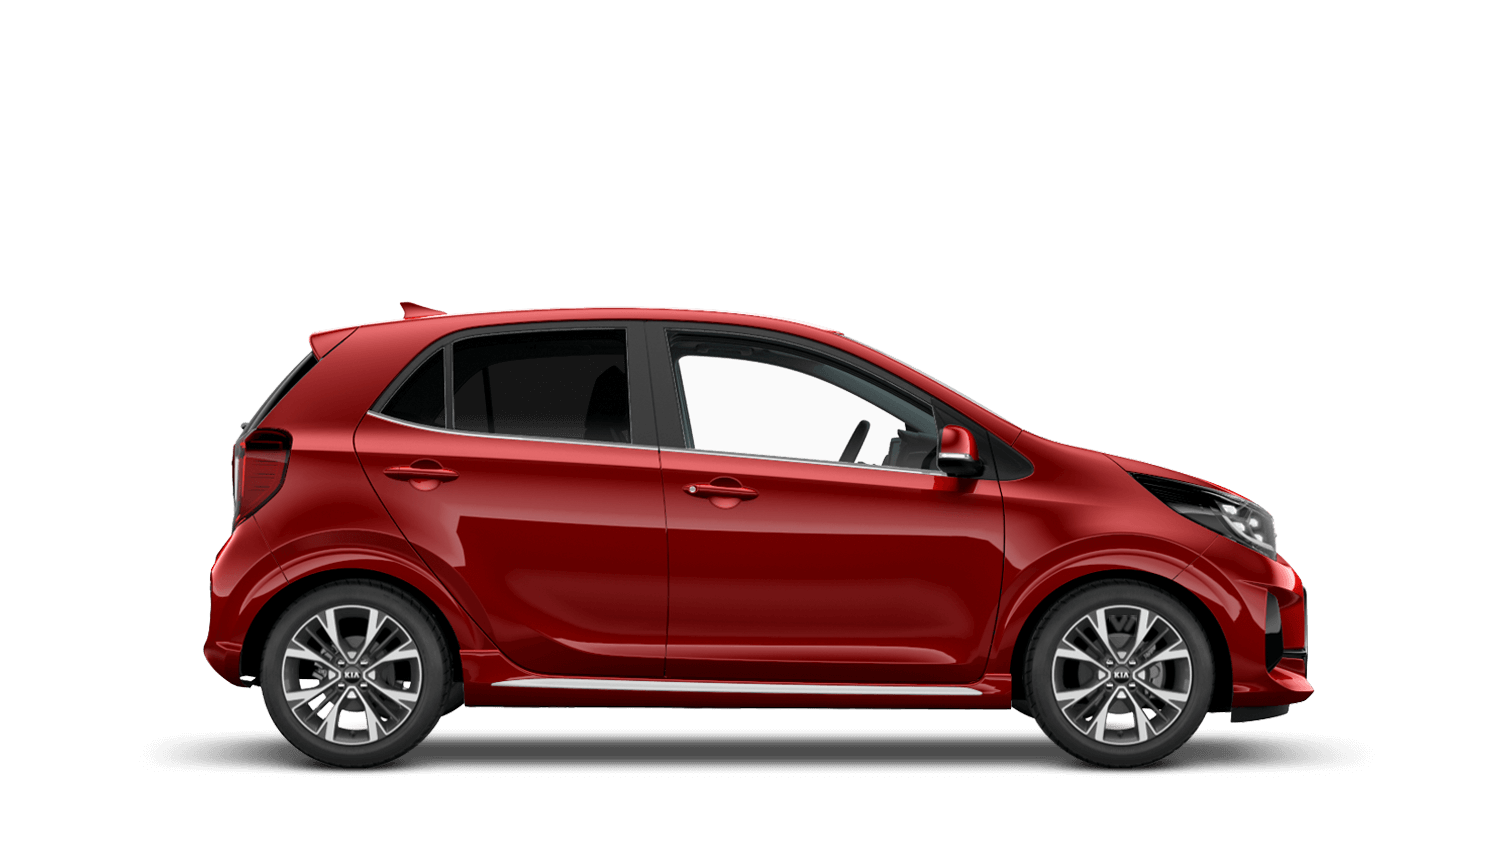 Chilli Red New Kia Picanto